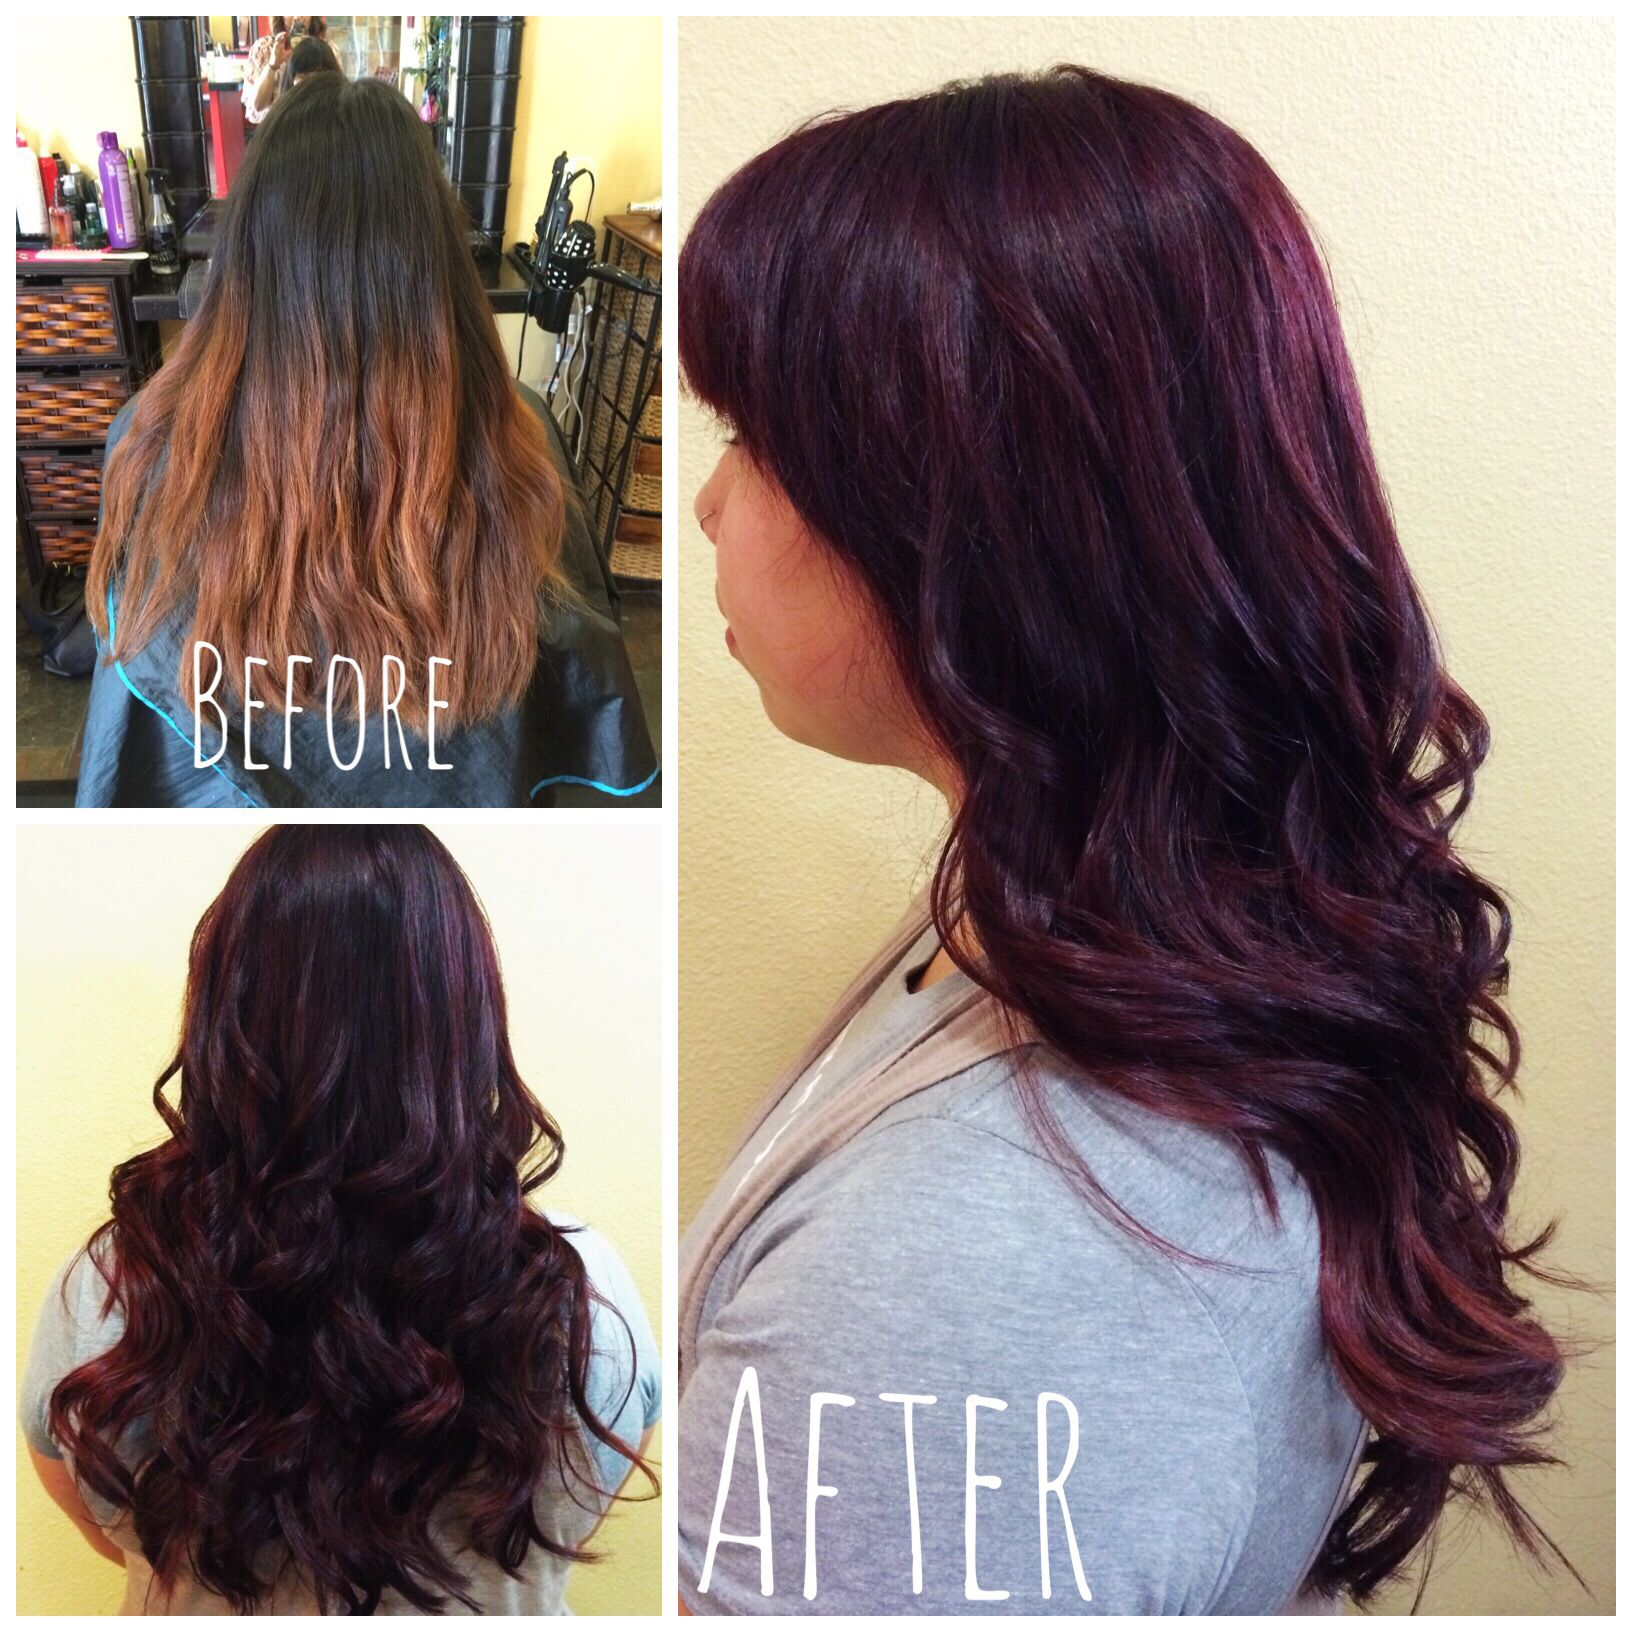 Merlot hair color - Merlot Red Hair Color From Today No More Ombr By Ashley Zenful